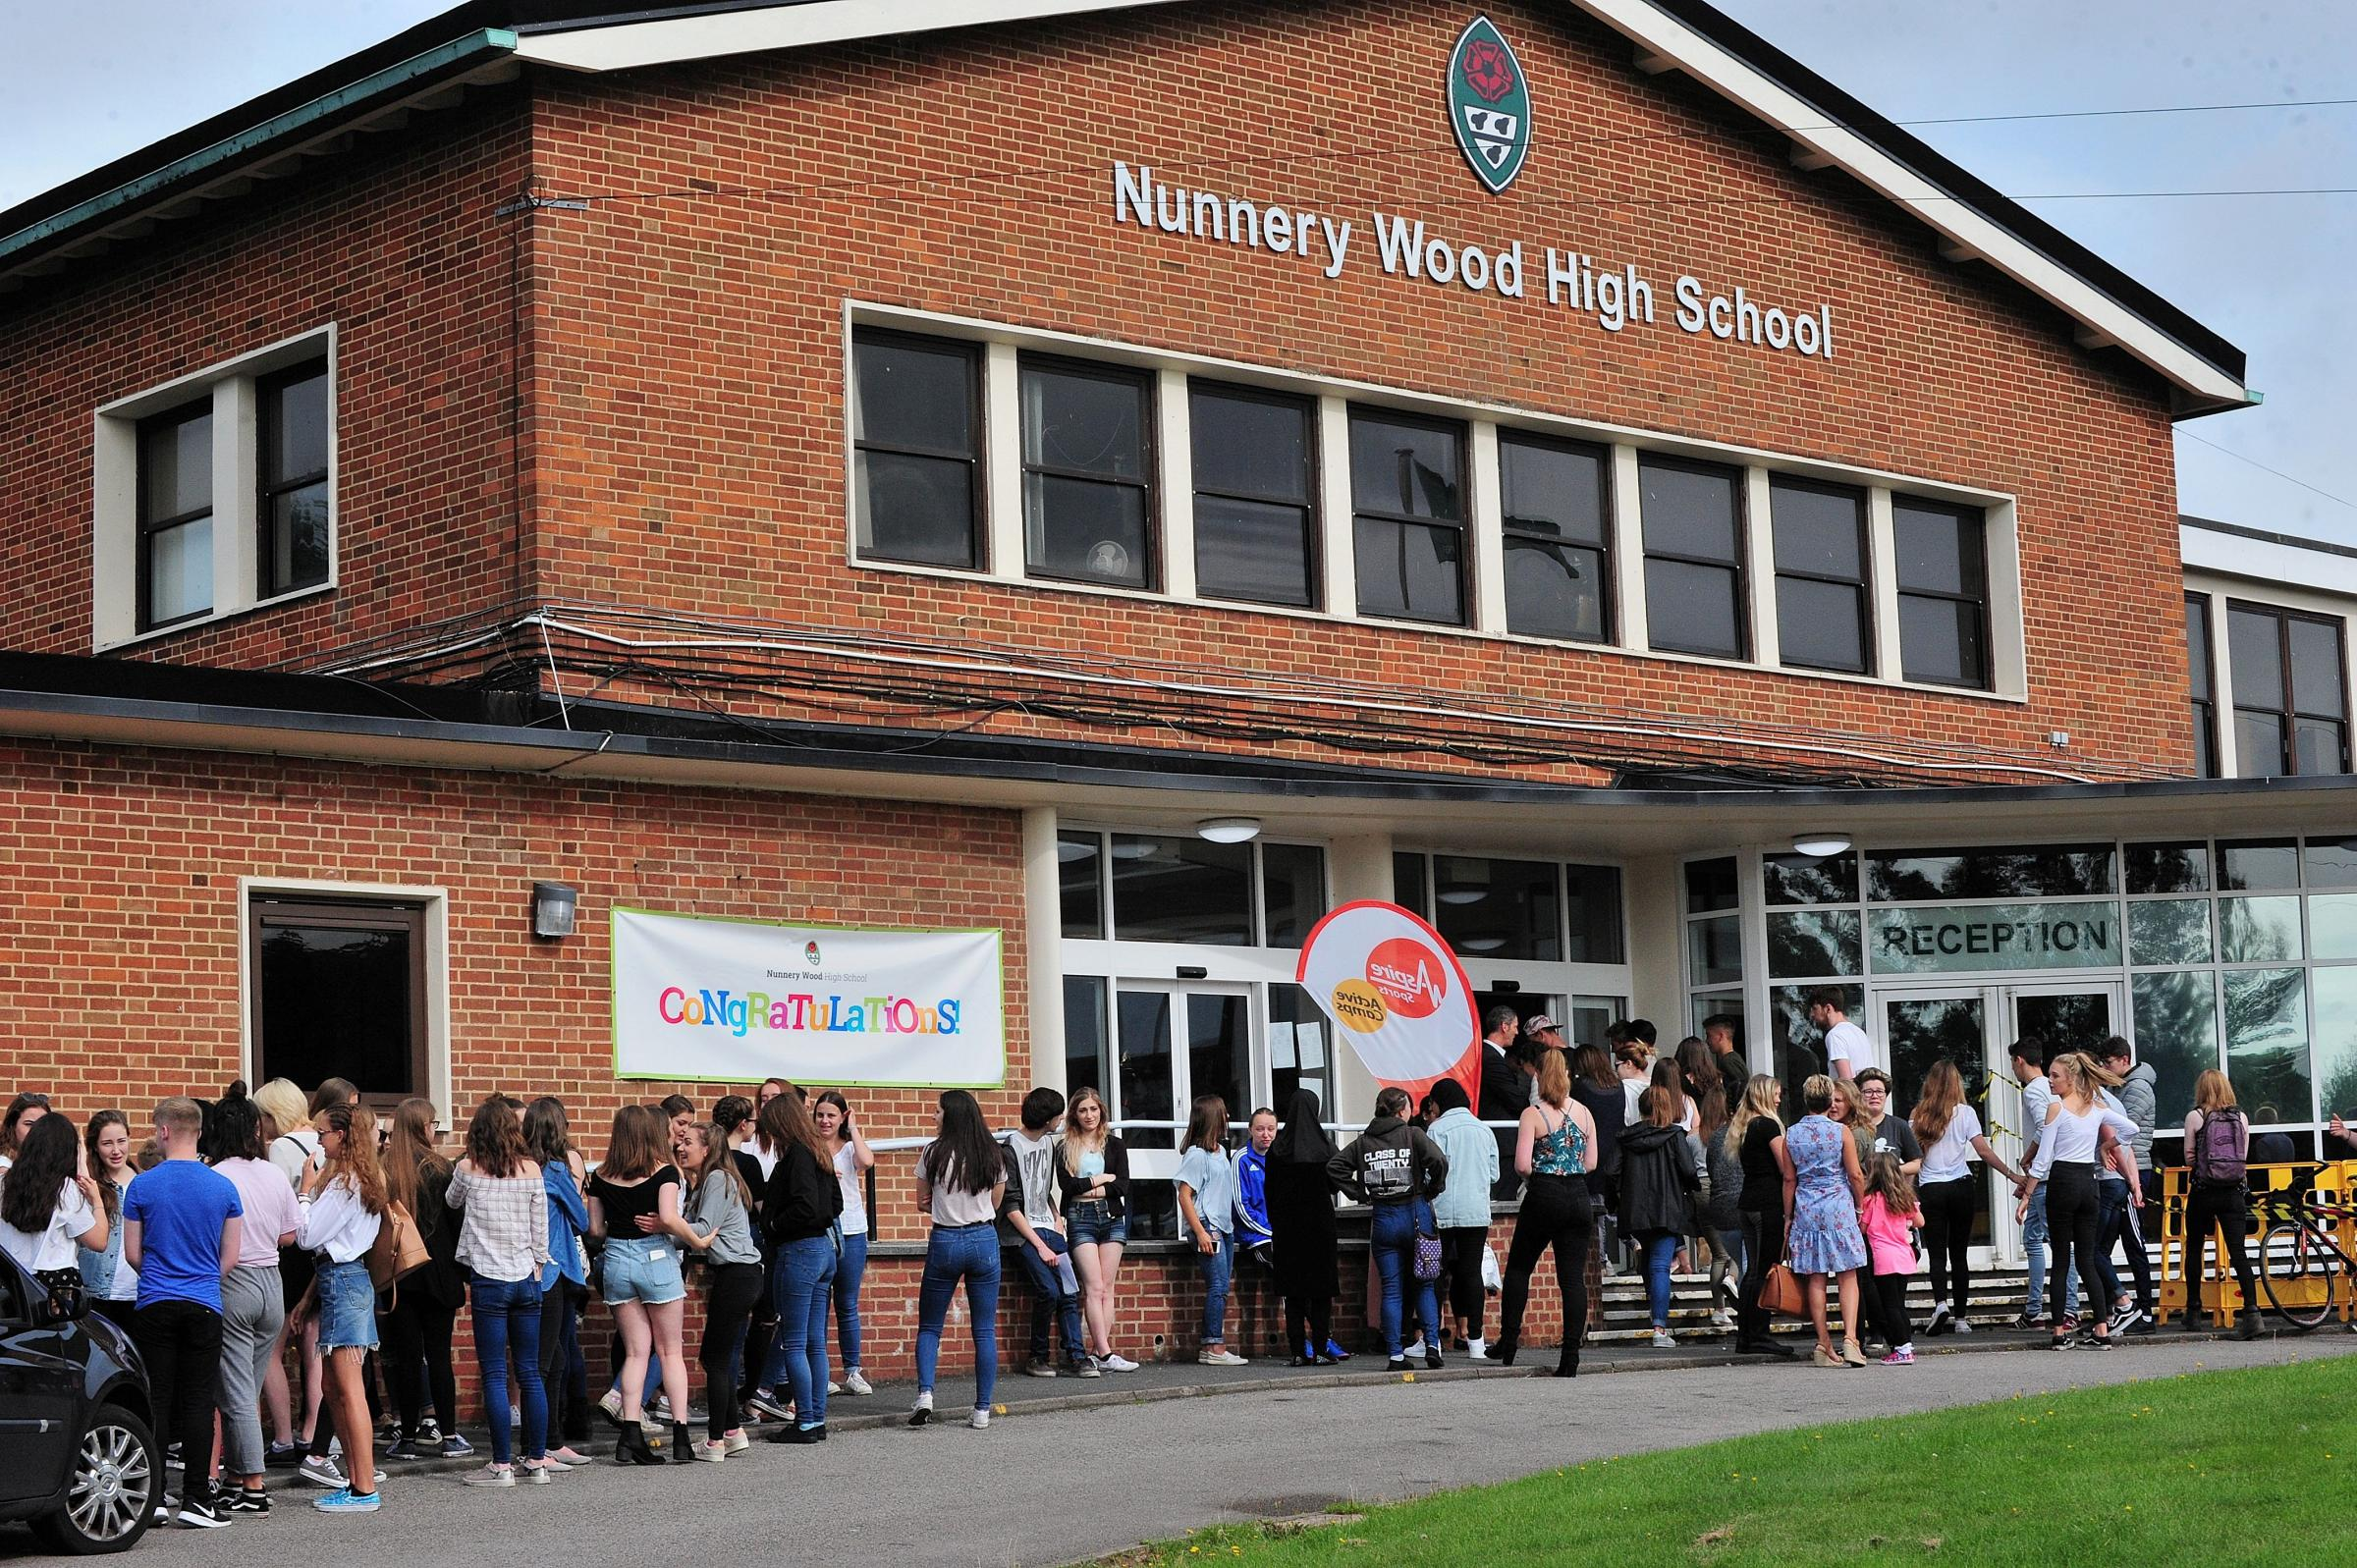 Nunnery Wood High School, Worcester, is one of the schools signed up for the council's schools' library service